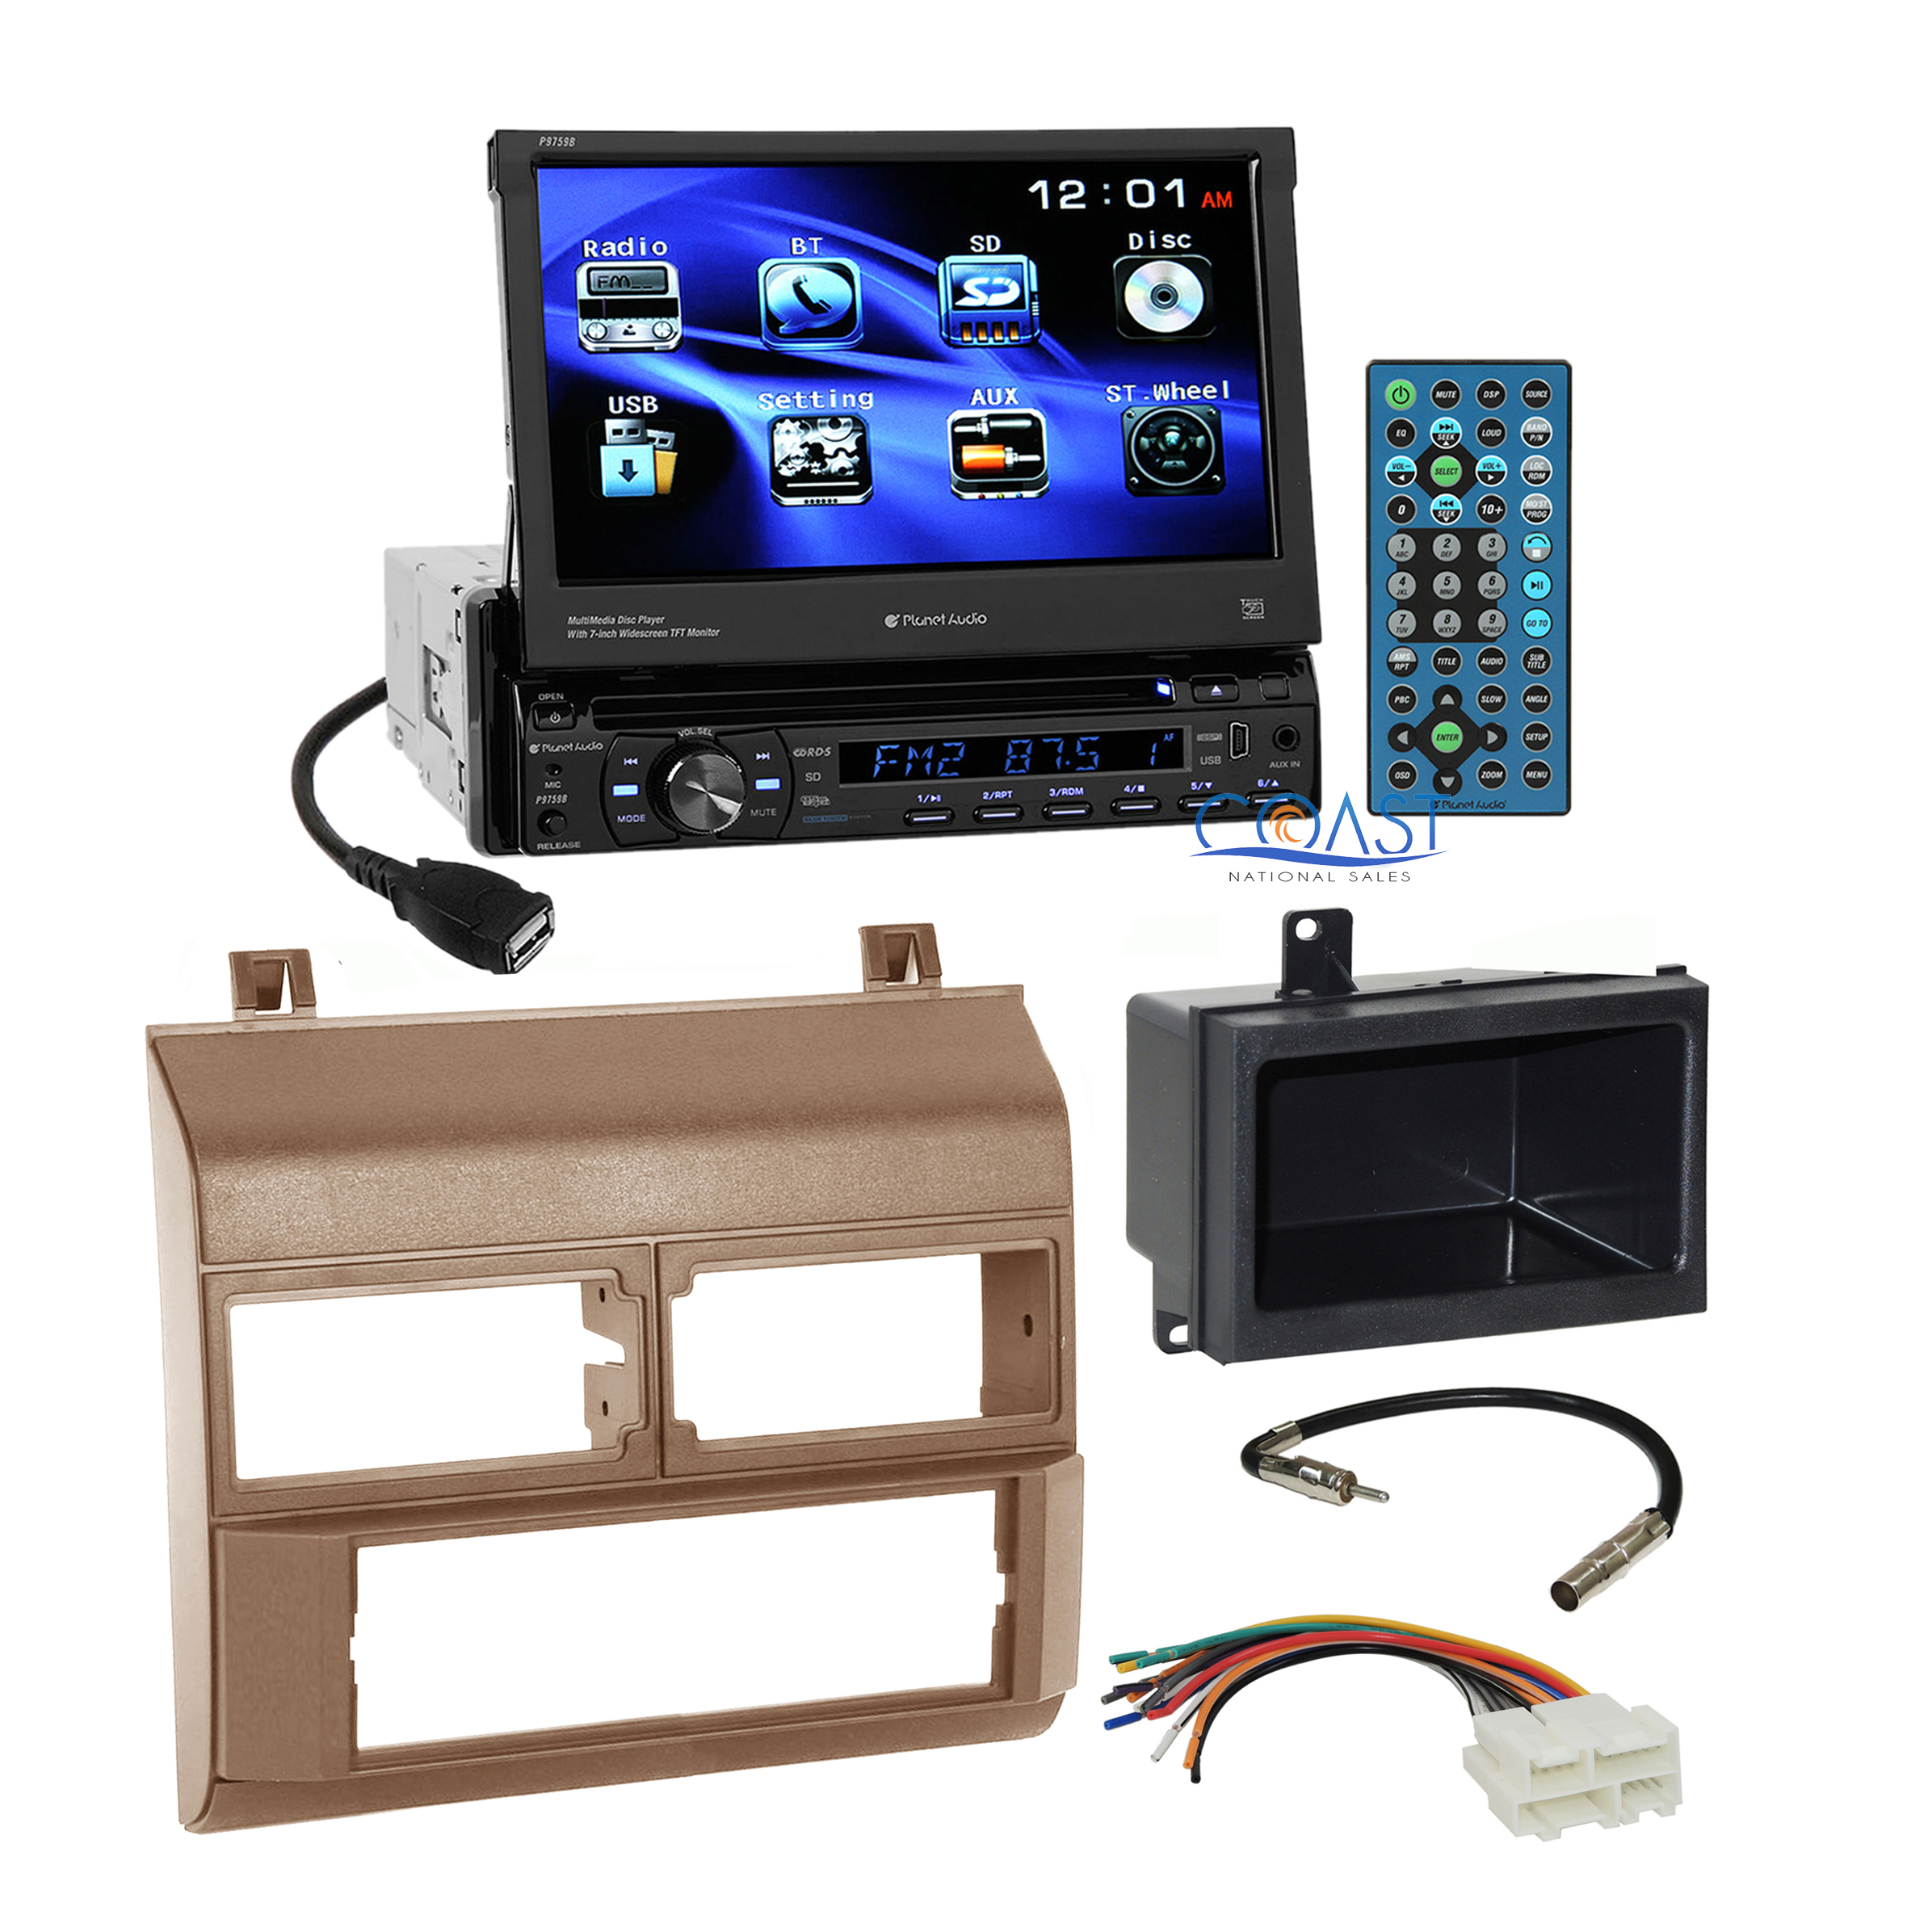 details about planet audio car dvd stereo beige dash kit harness for 88-94  chevy gmc truck